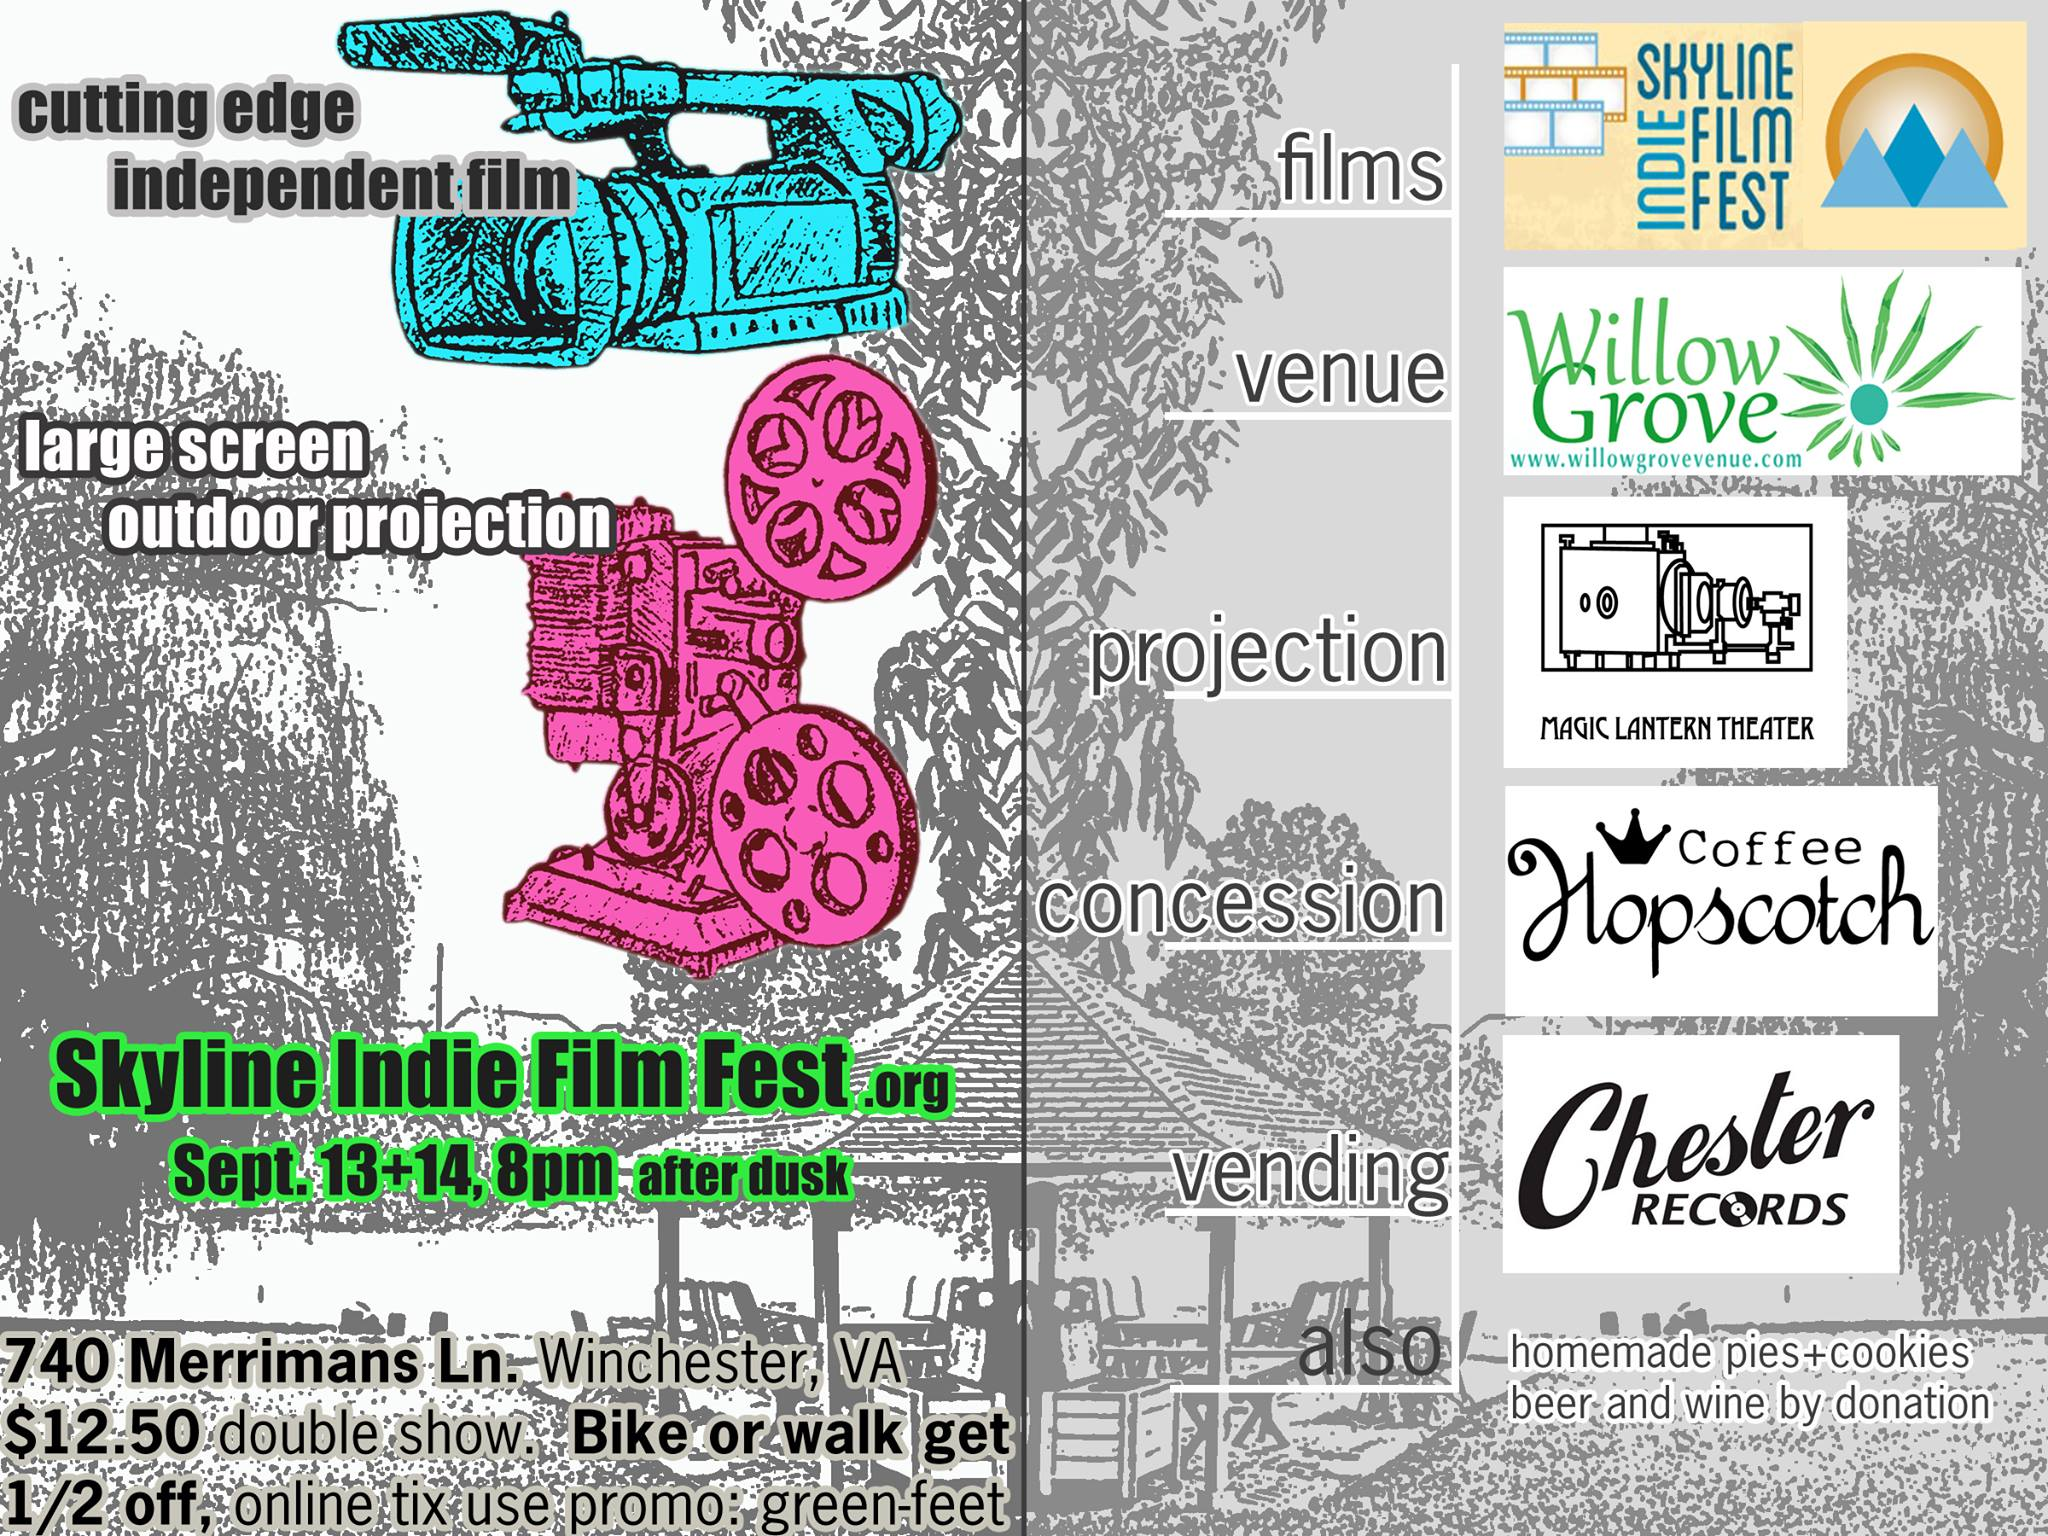 Skyline Indie Film Fest Willow Grove Farm Winchester VA flyer